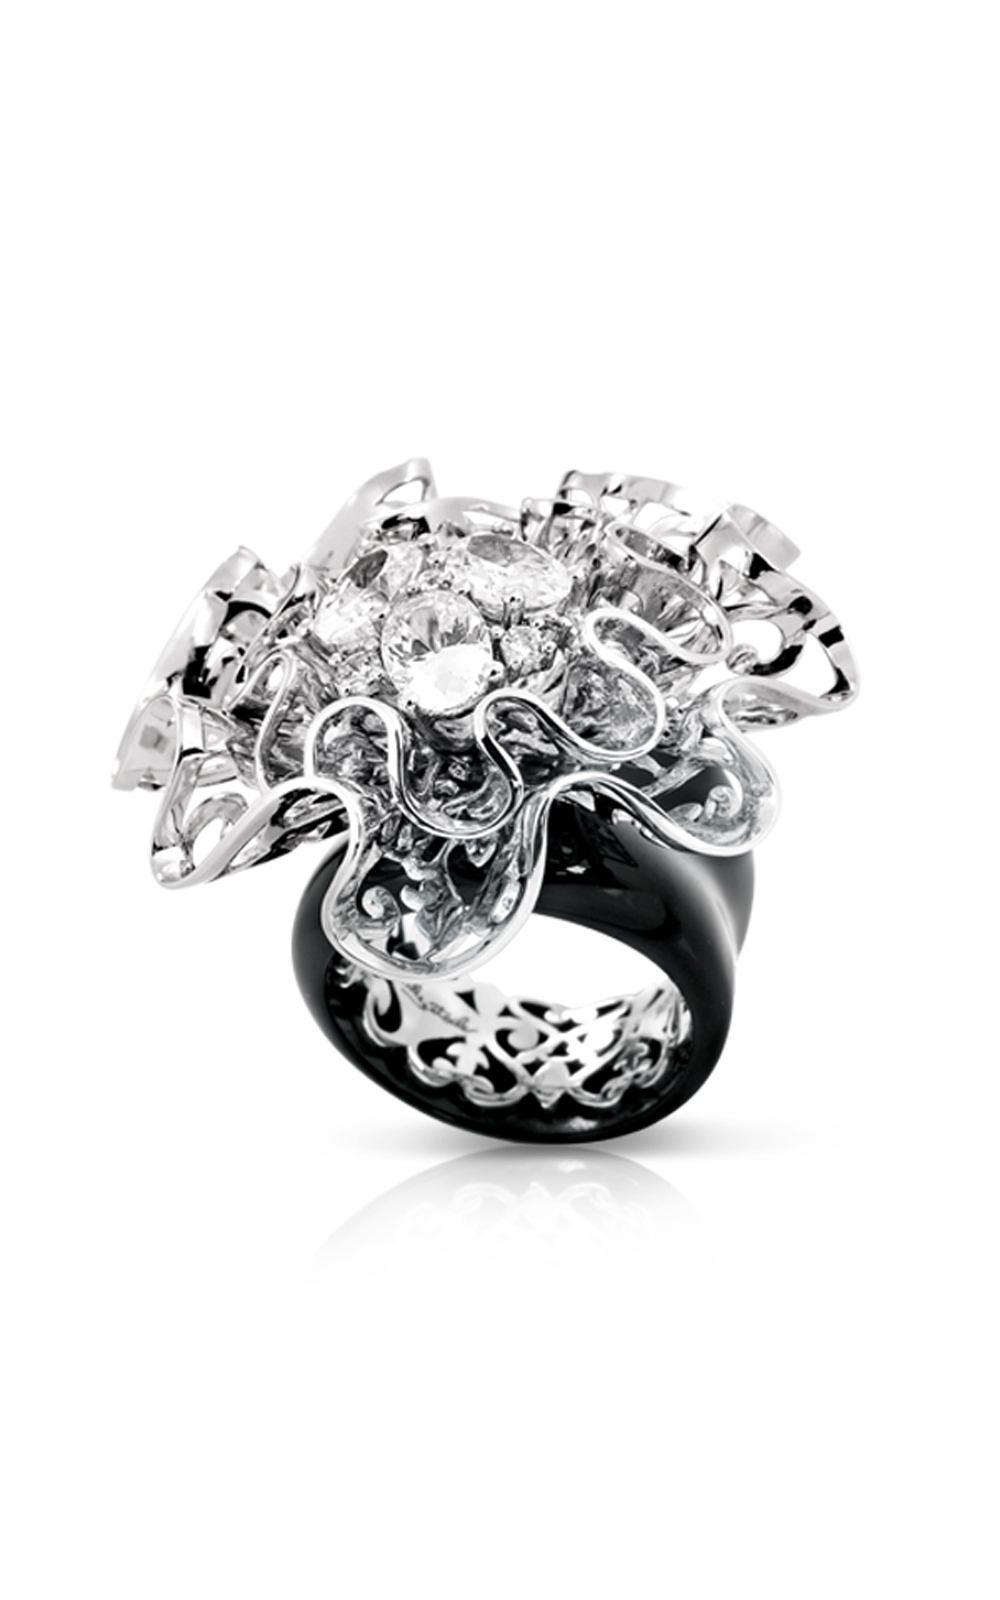 Belle Etoile Corsage Black Ring 01061010301-8 product image